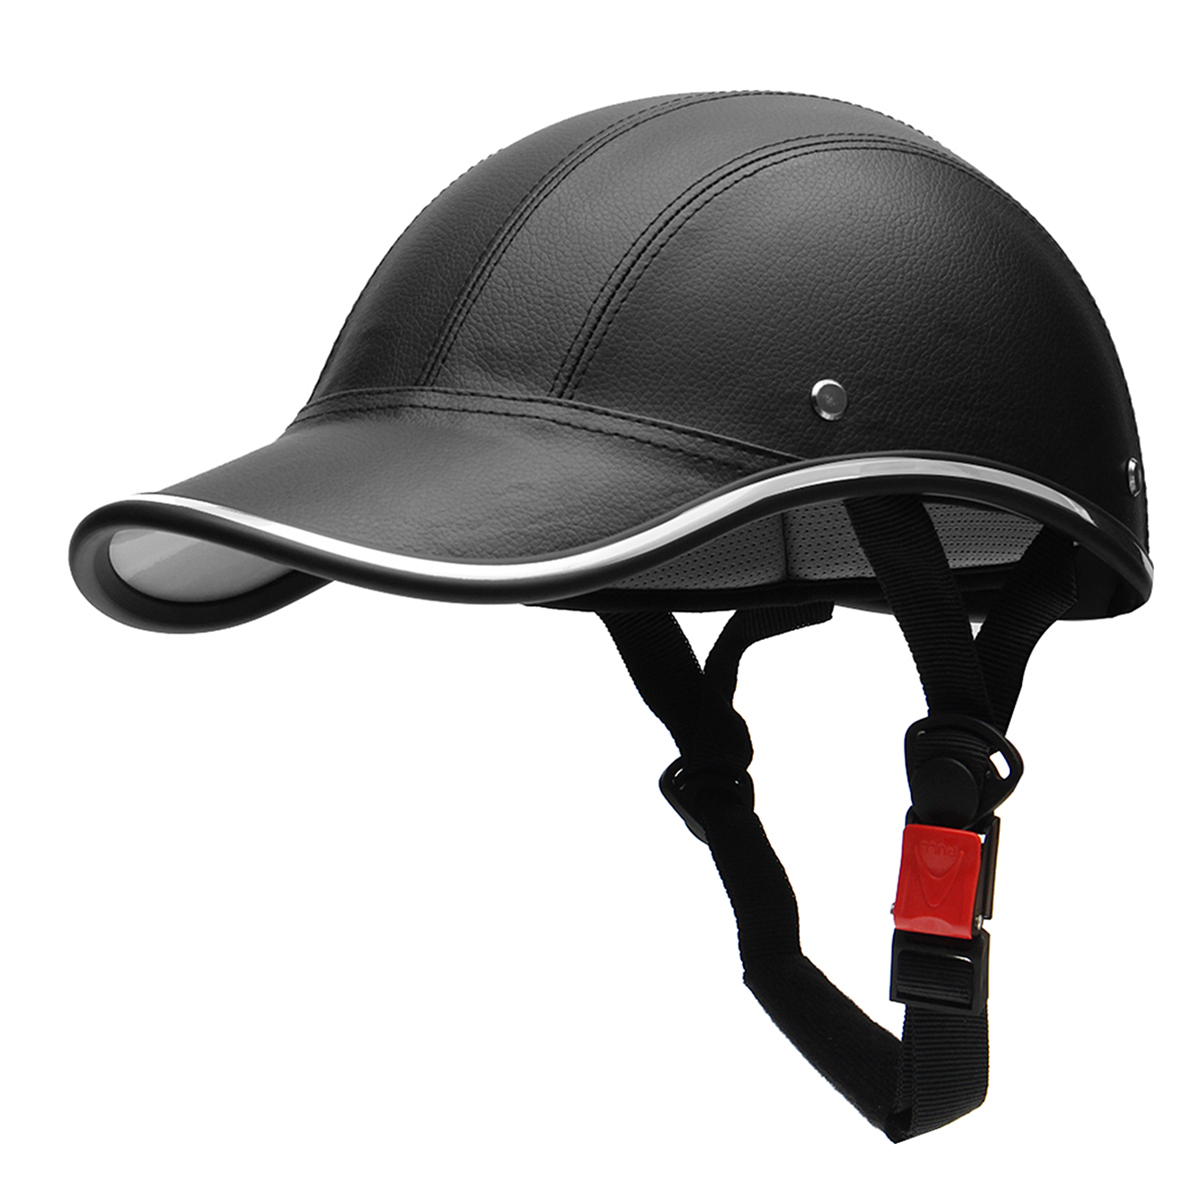 24aadc322 Half Helmet Baseball Cap Style Safety Hard Hat Open Face For Motorcycle  Bike Scooter